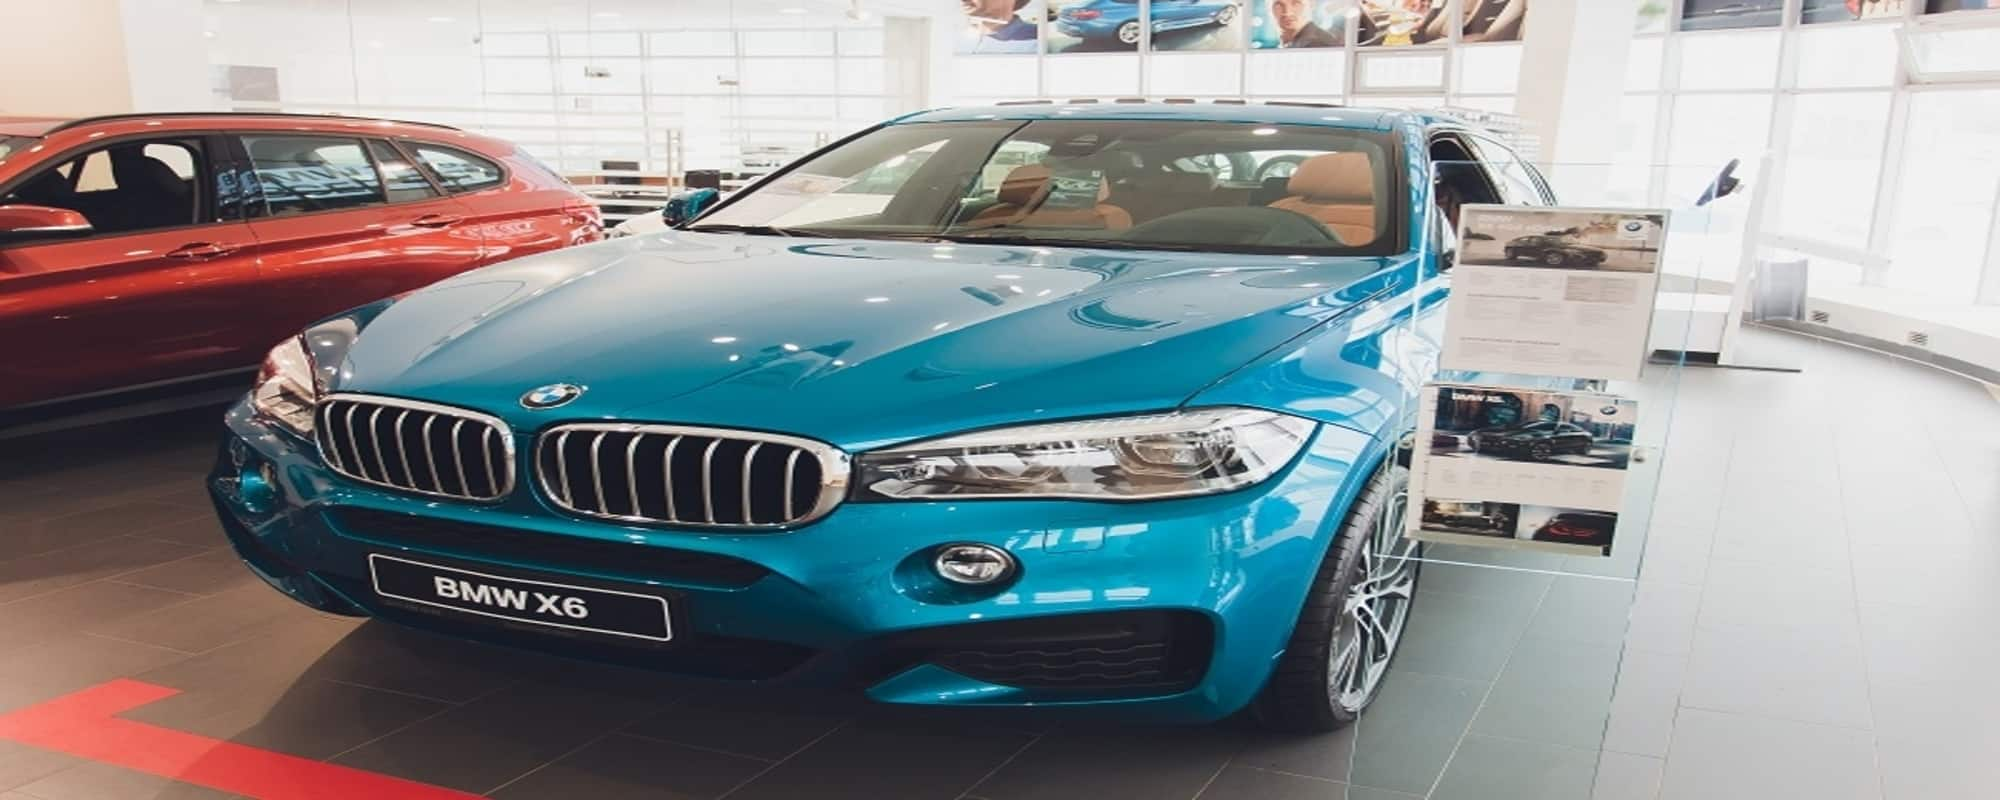 Why Should You Choose The BMW Service Center For Your Vehicle?